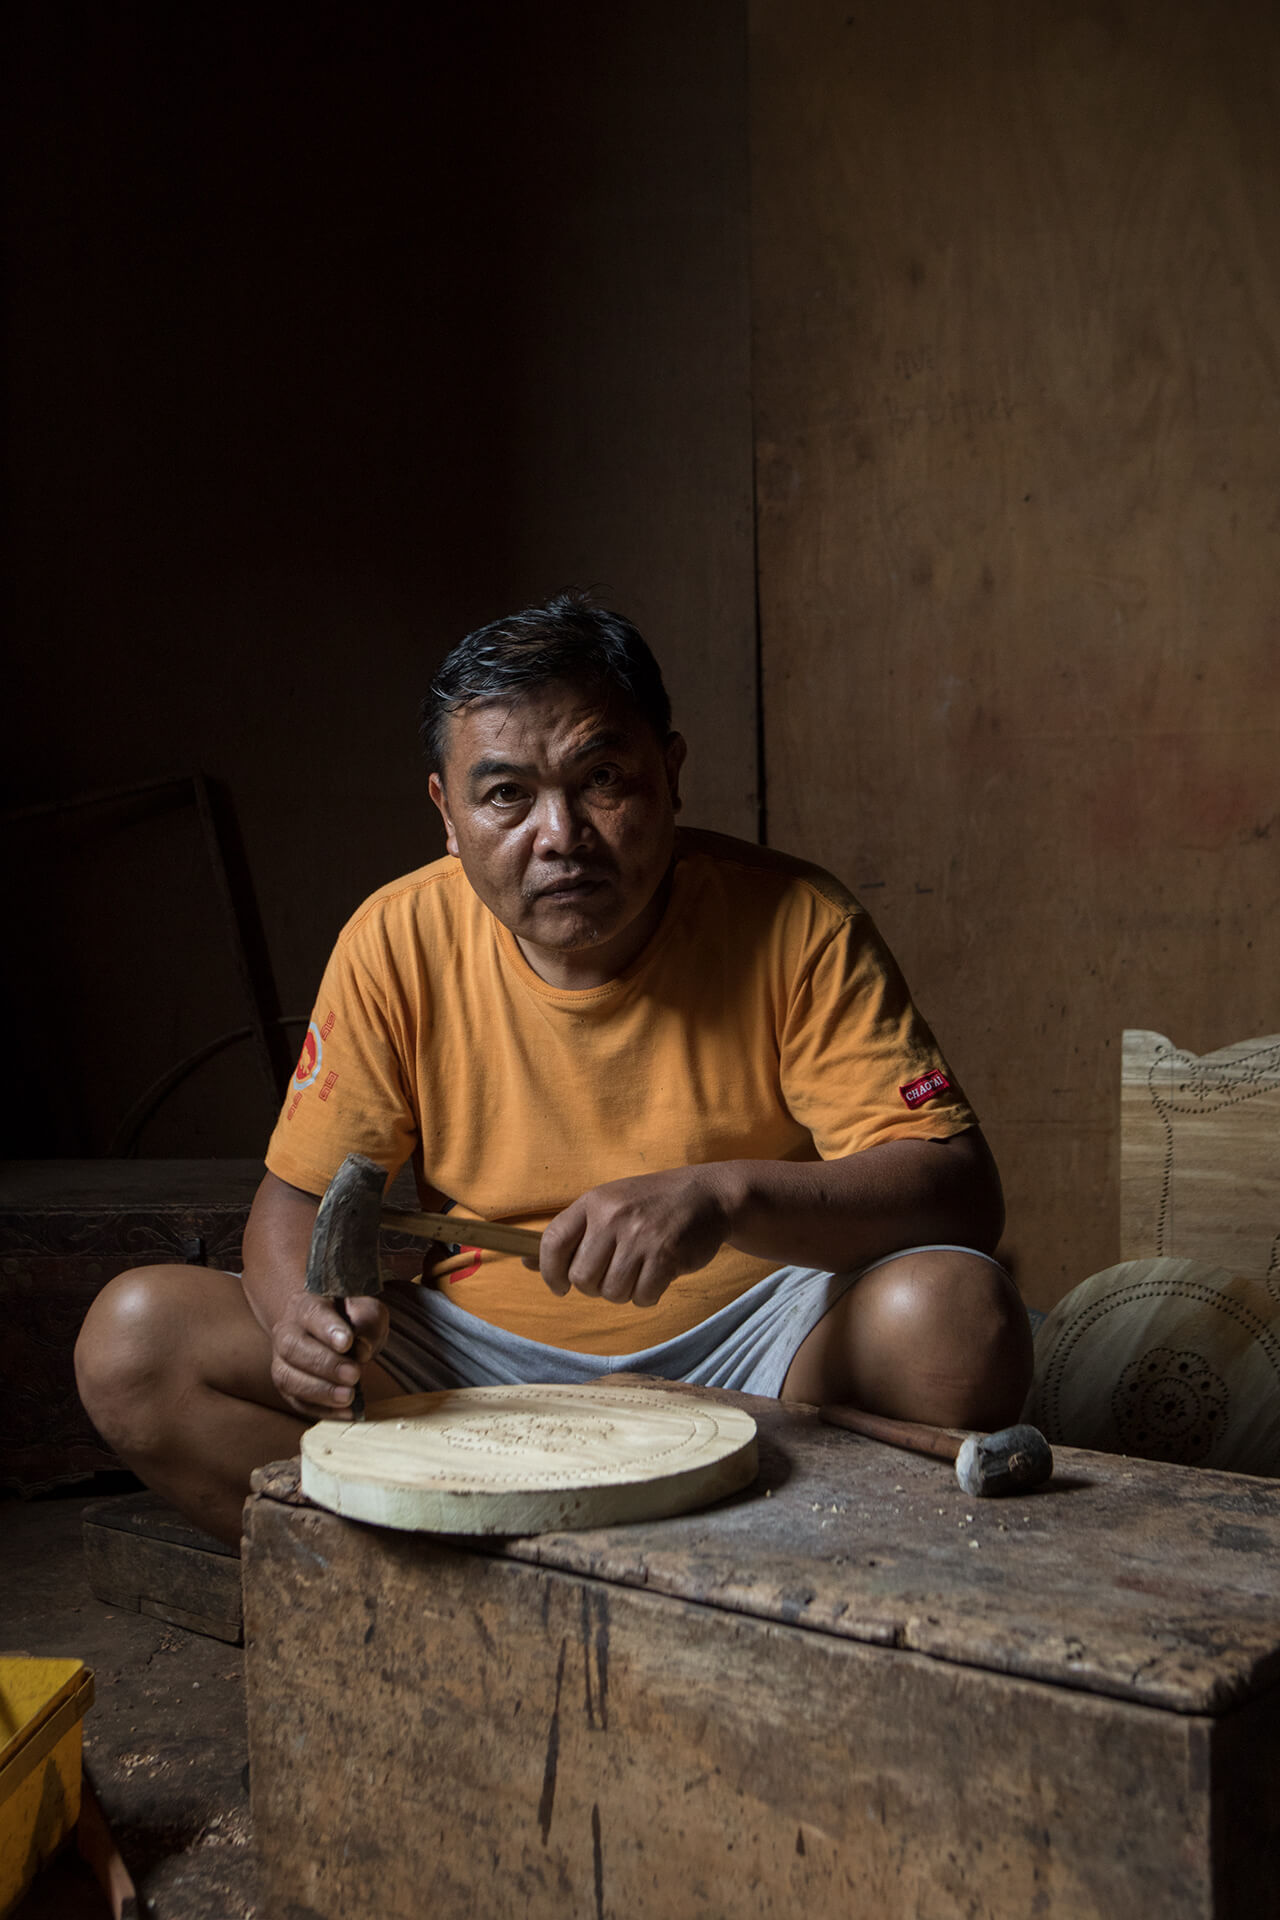 Maranao artisinal craftsman working-up okir patterns on a wooden plate.